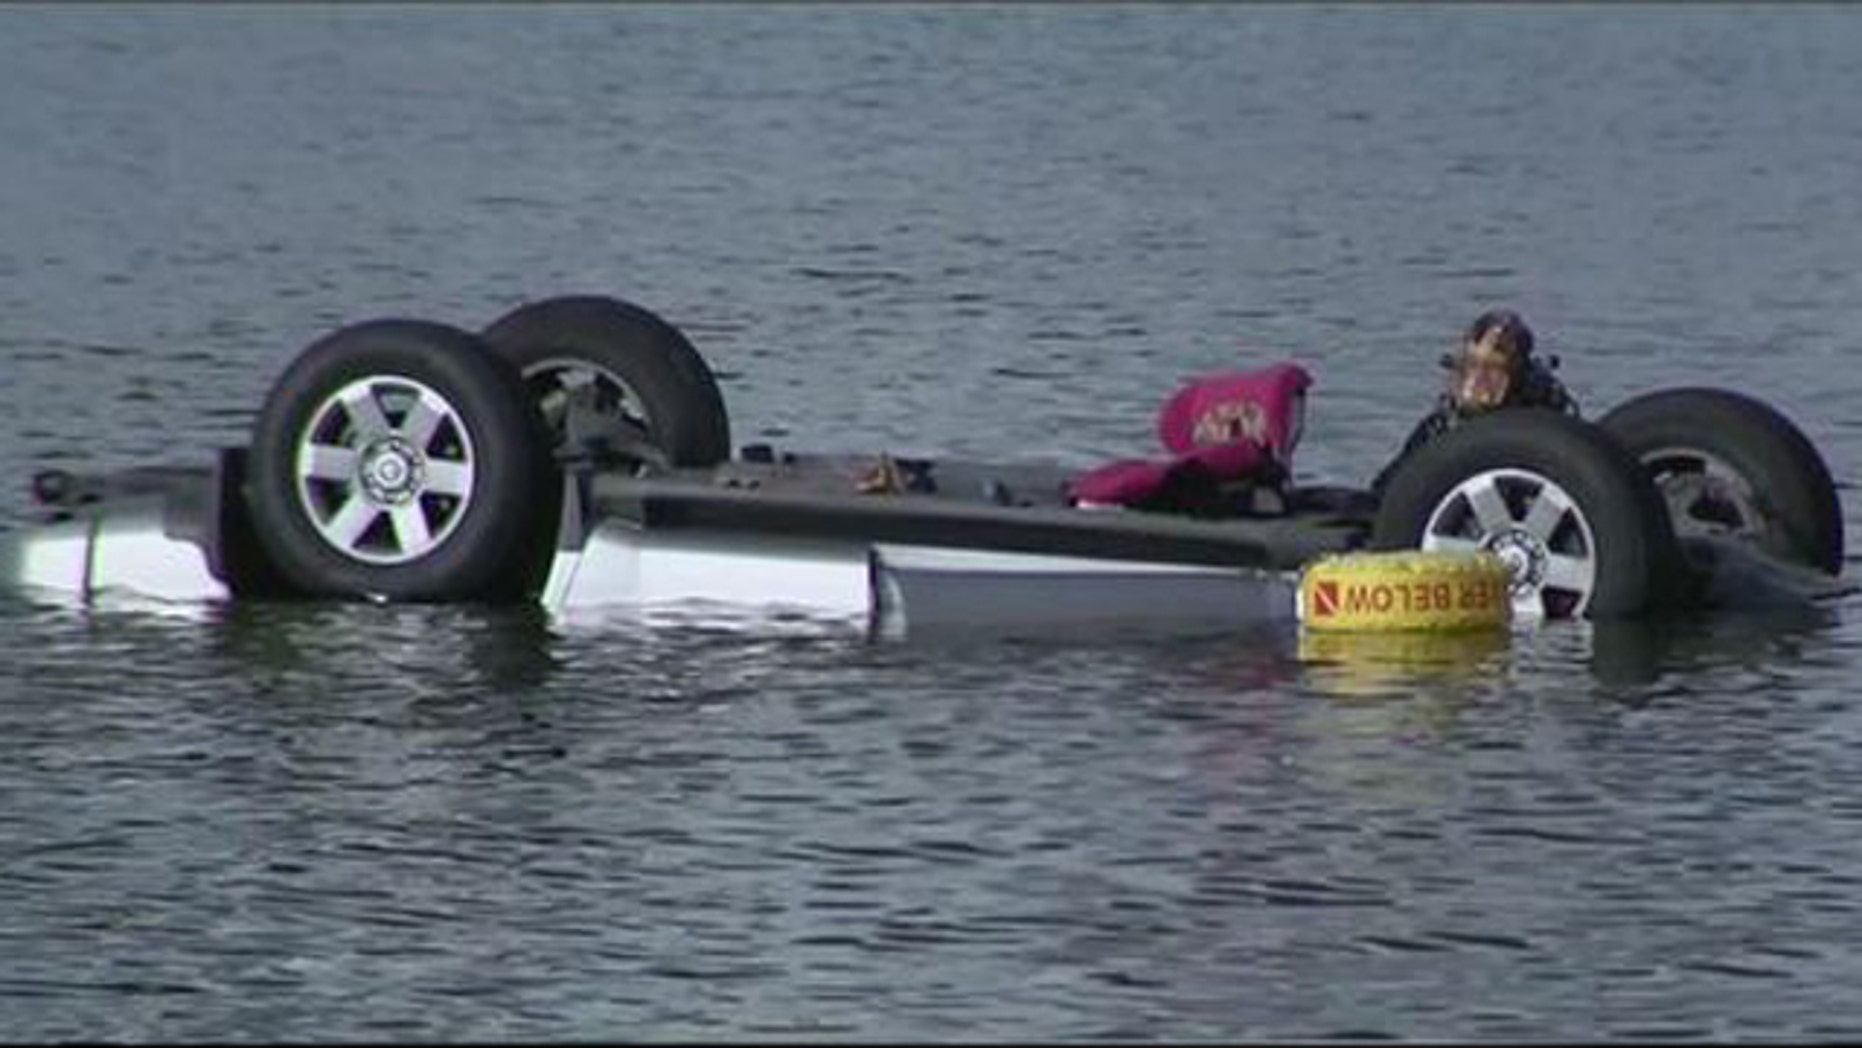 Oct. 18, 2015: A diver examines the SUV in Tempe Town Lake in Tempe, Ariz. Five people, including three children, died in the accident. (KSAZ)